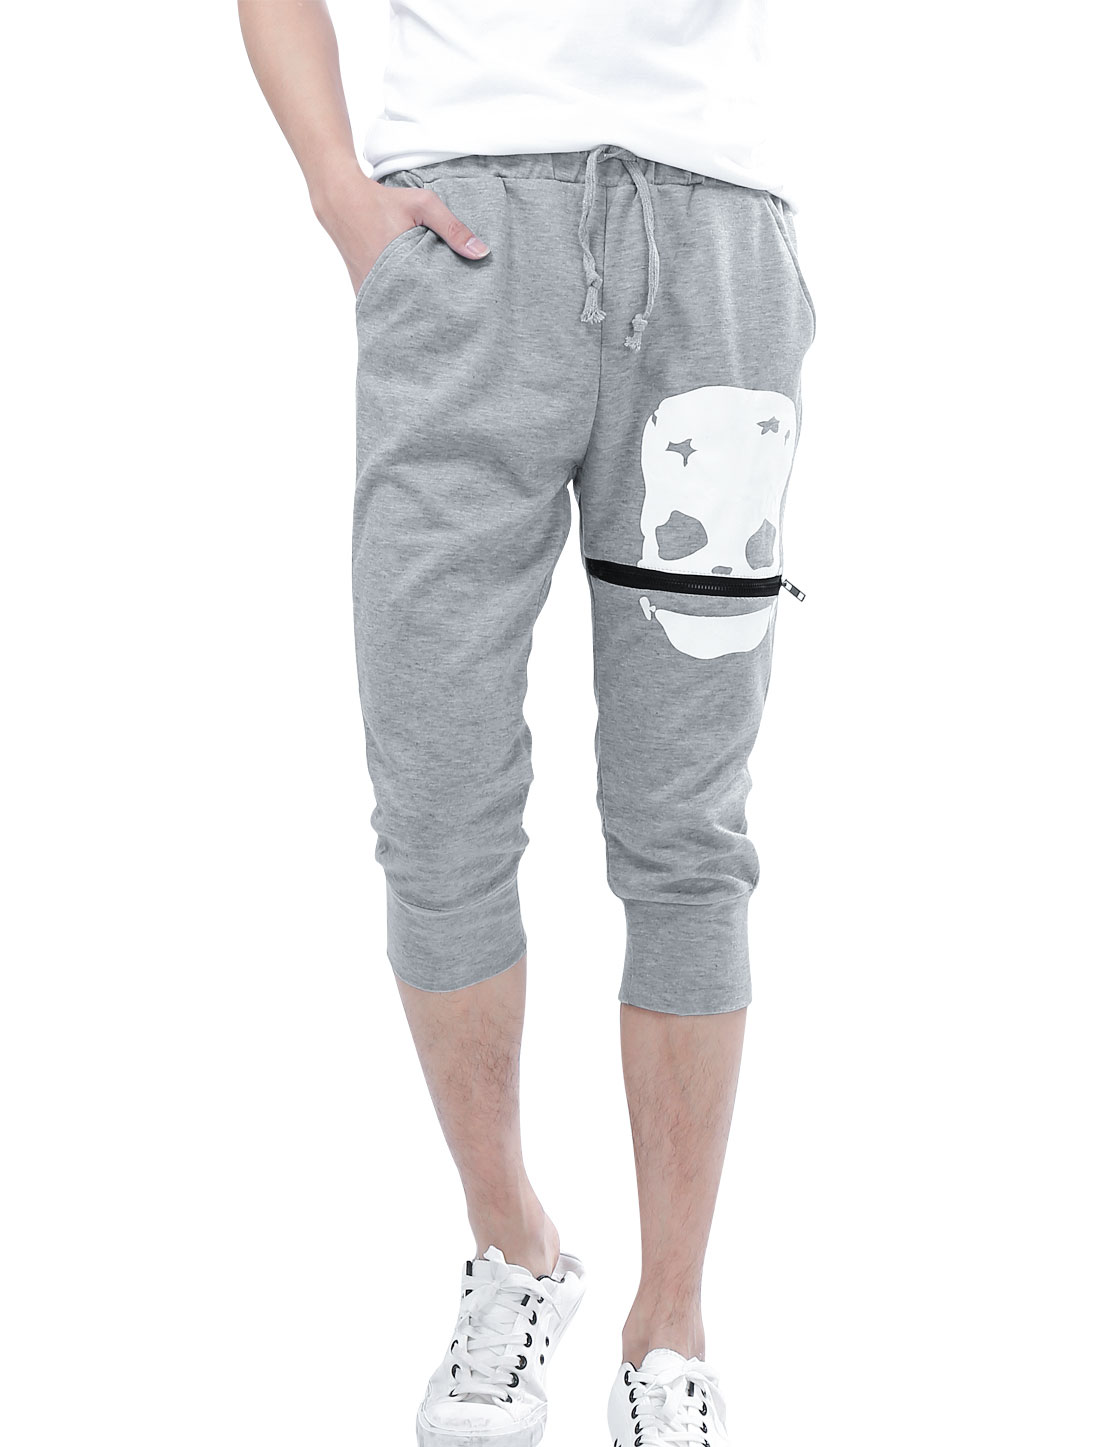 Men Drawstring Waist Zipper Decor Stylish Capris Pants Light Gray W28